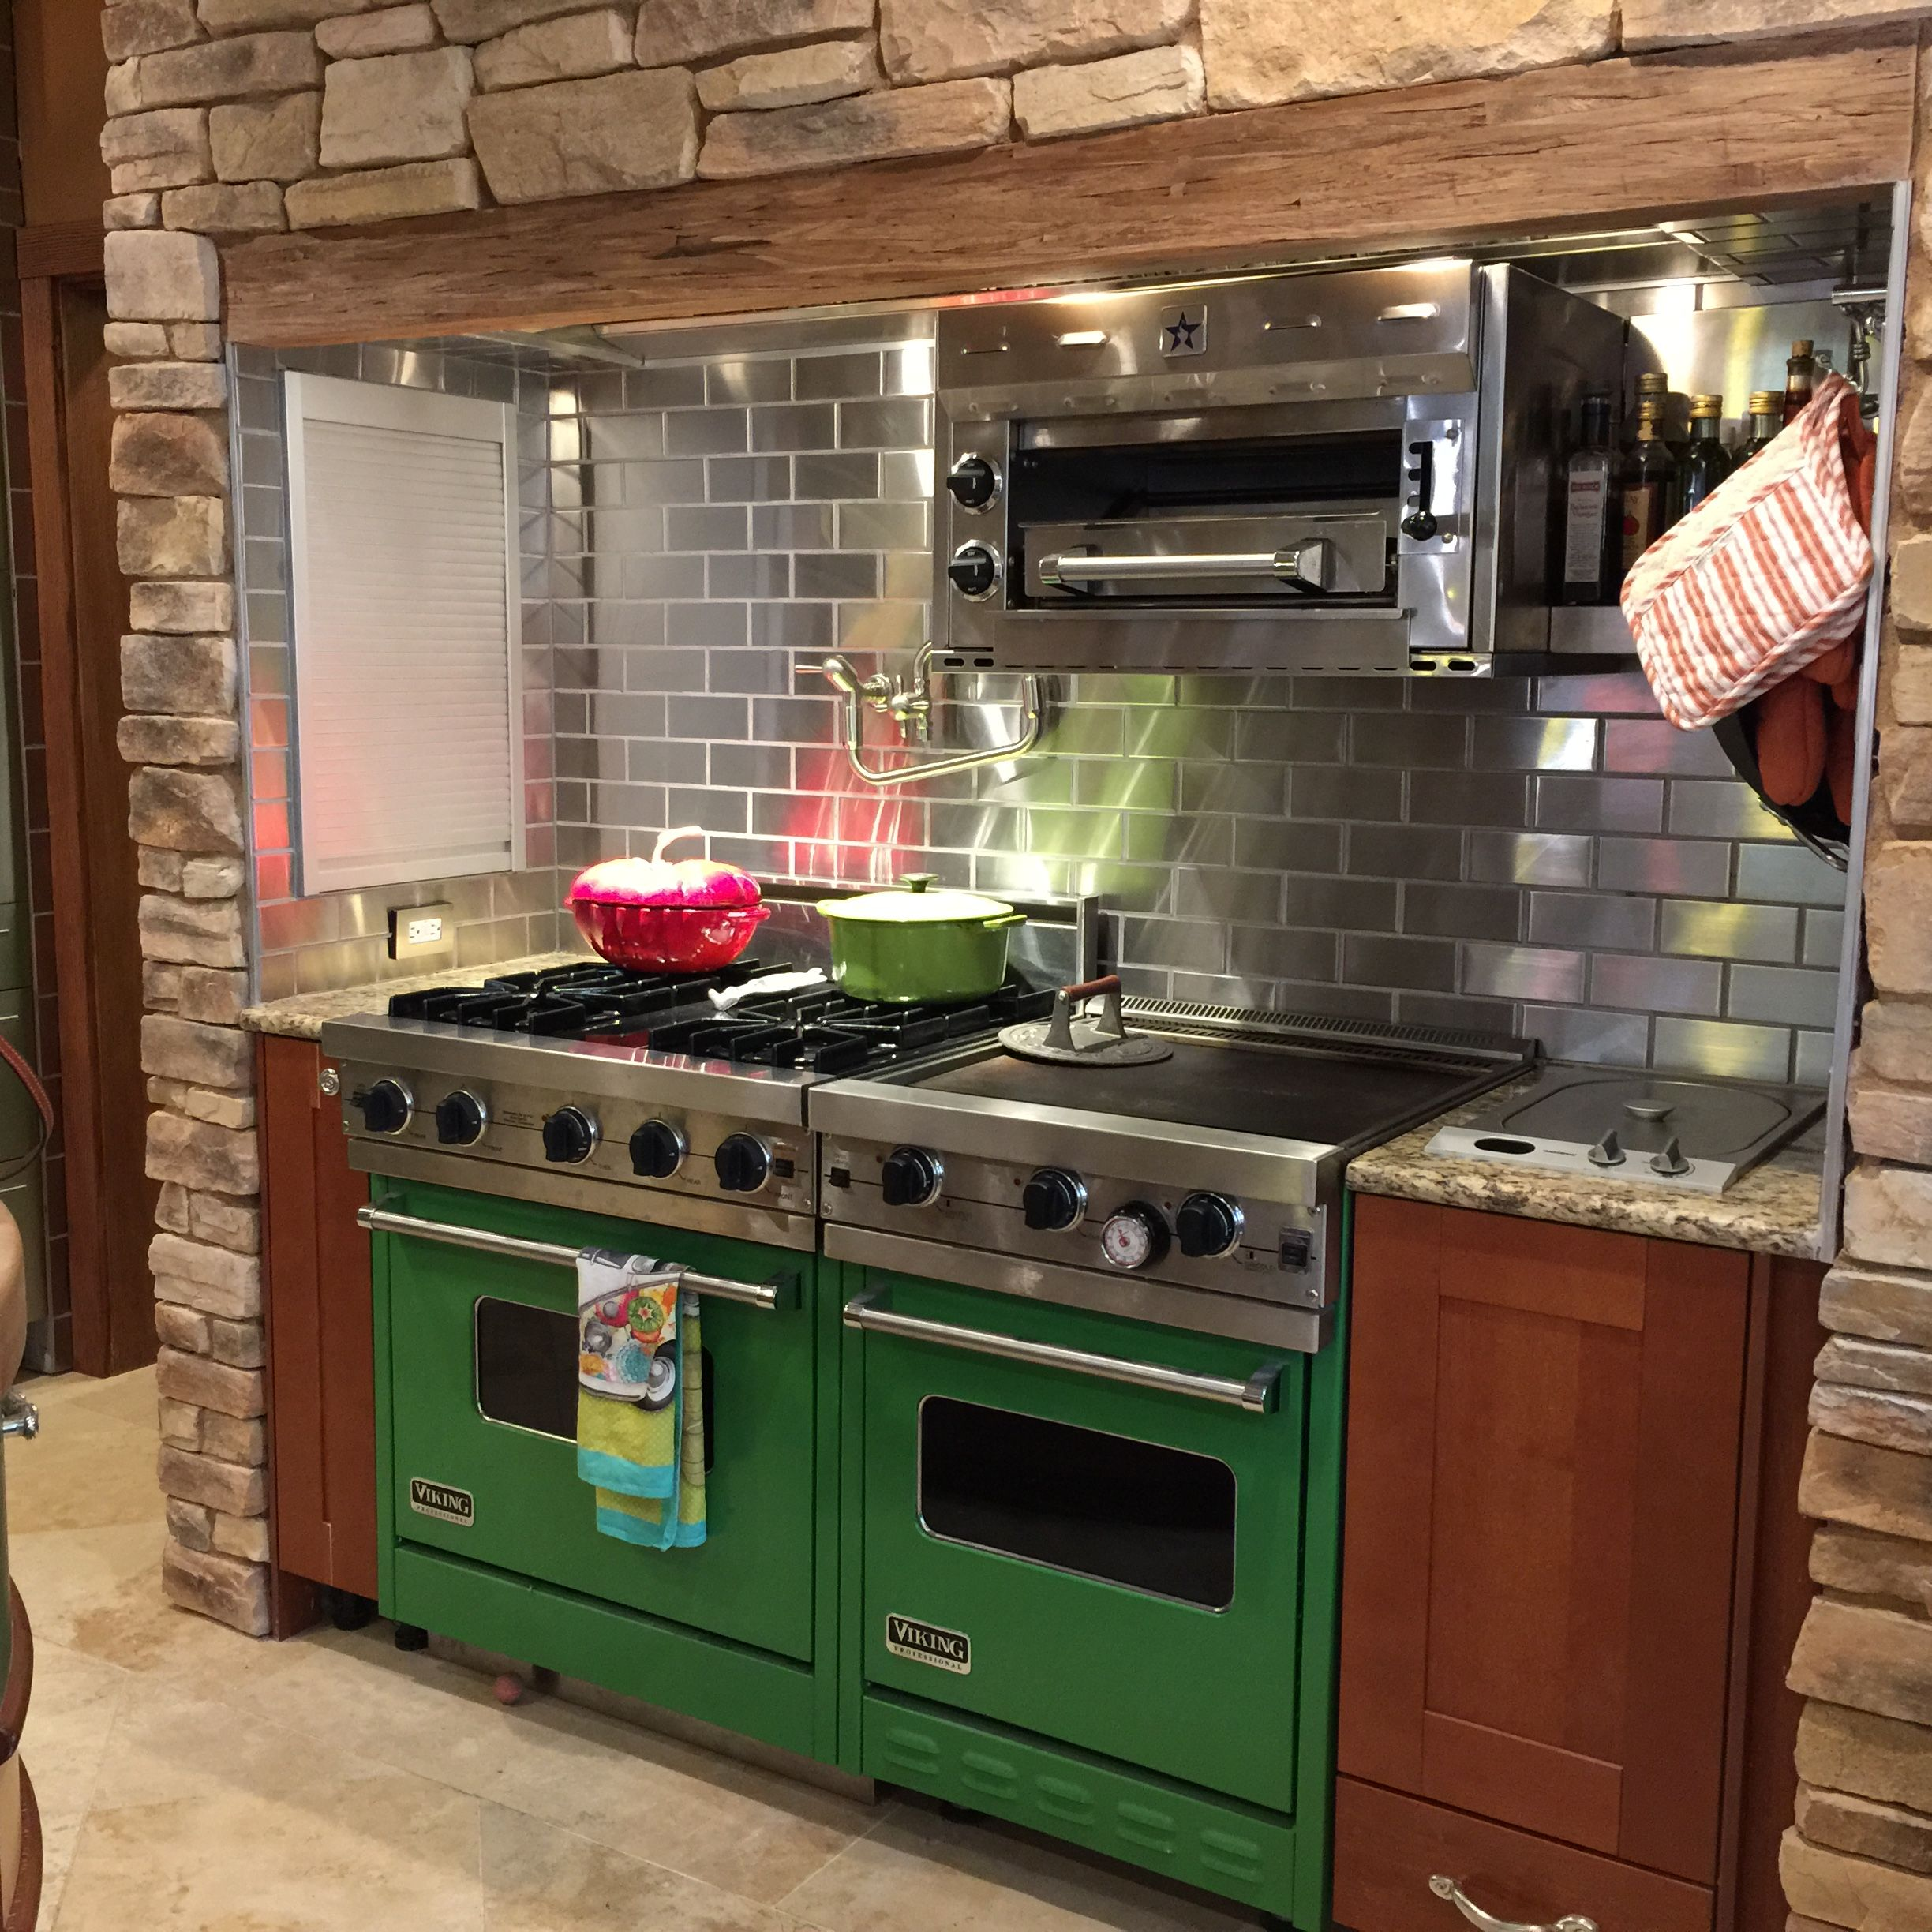 A gorgeous customer kitchen design with green stoves stainless welcome to stainless steel tile we manufacture high quality subway backsplash tile for kitchens bathrooms and outdoor areas dailygadgetfo Choice Image